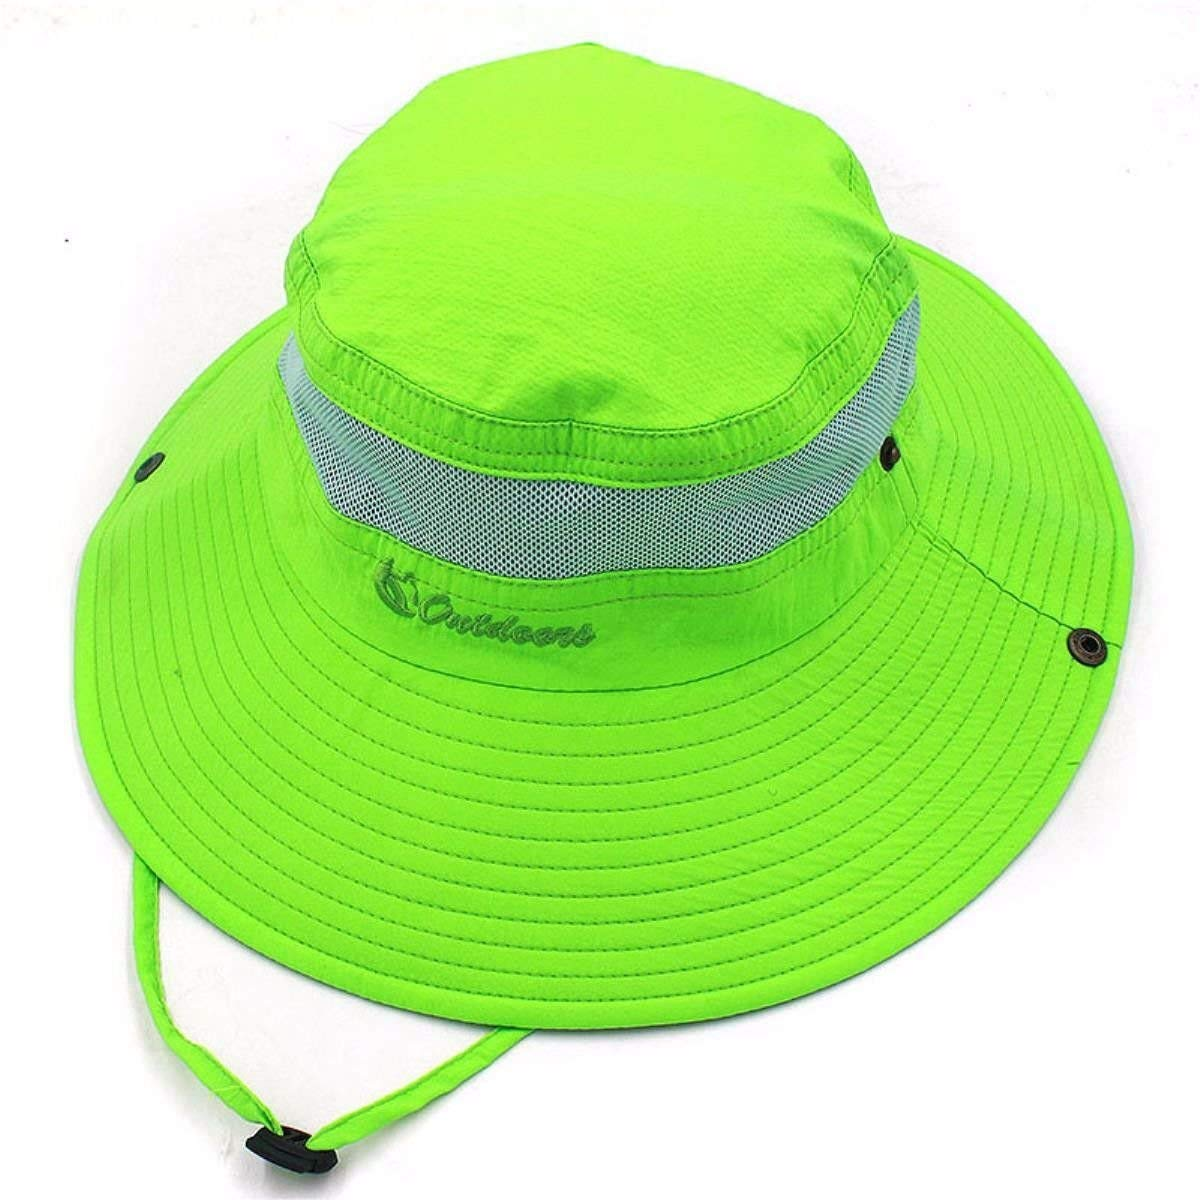 7f69a849183 Get Quotations · LONFENN Ladies Women Hats Men And Neutral Couples Summer  Fishing Cap Outdoor Sun Visor Hats Breathable